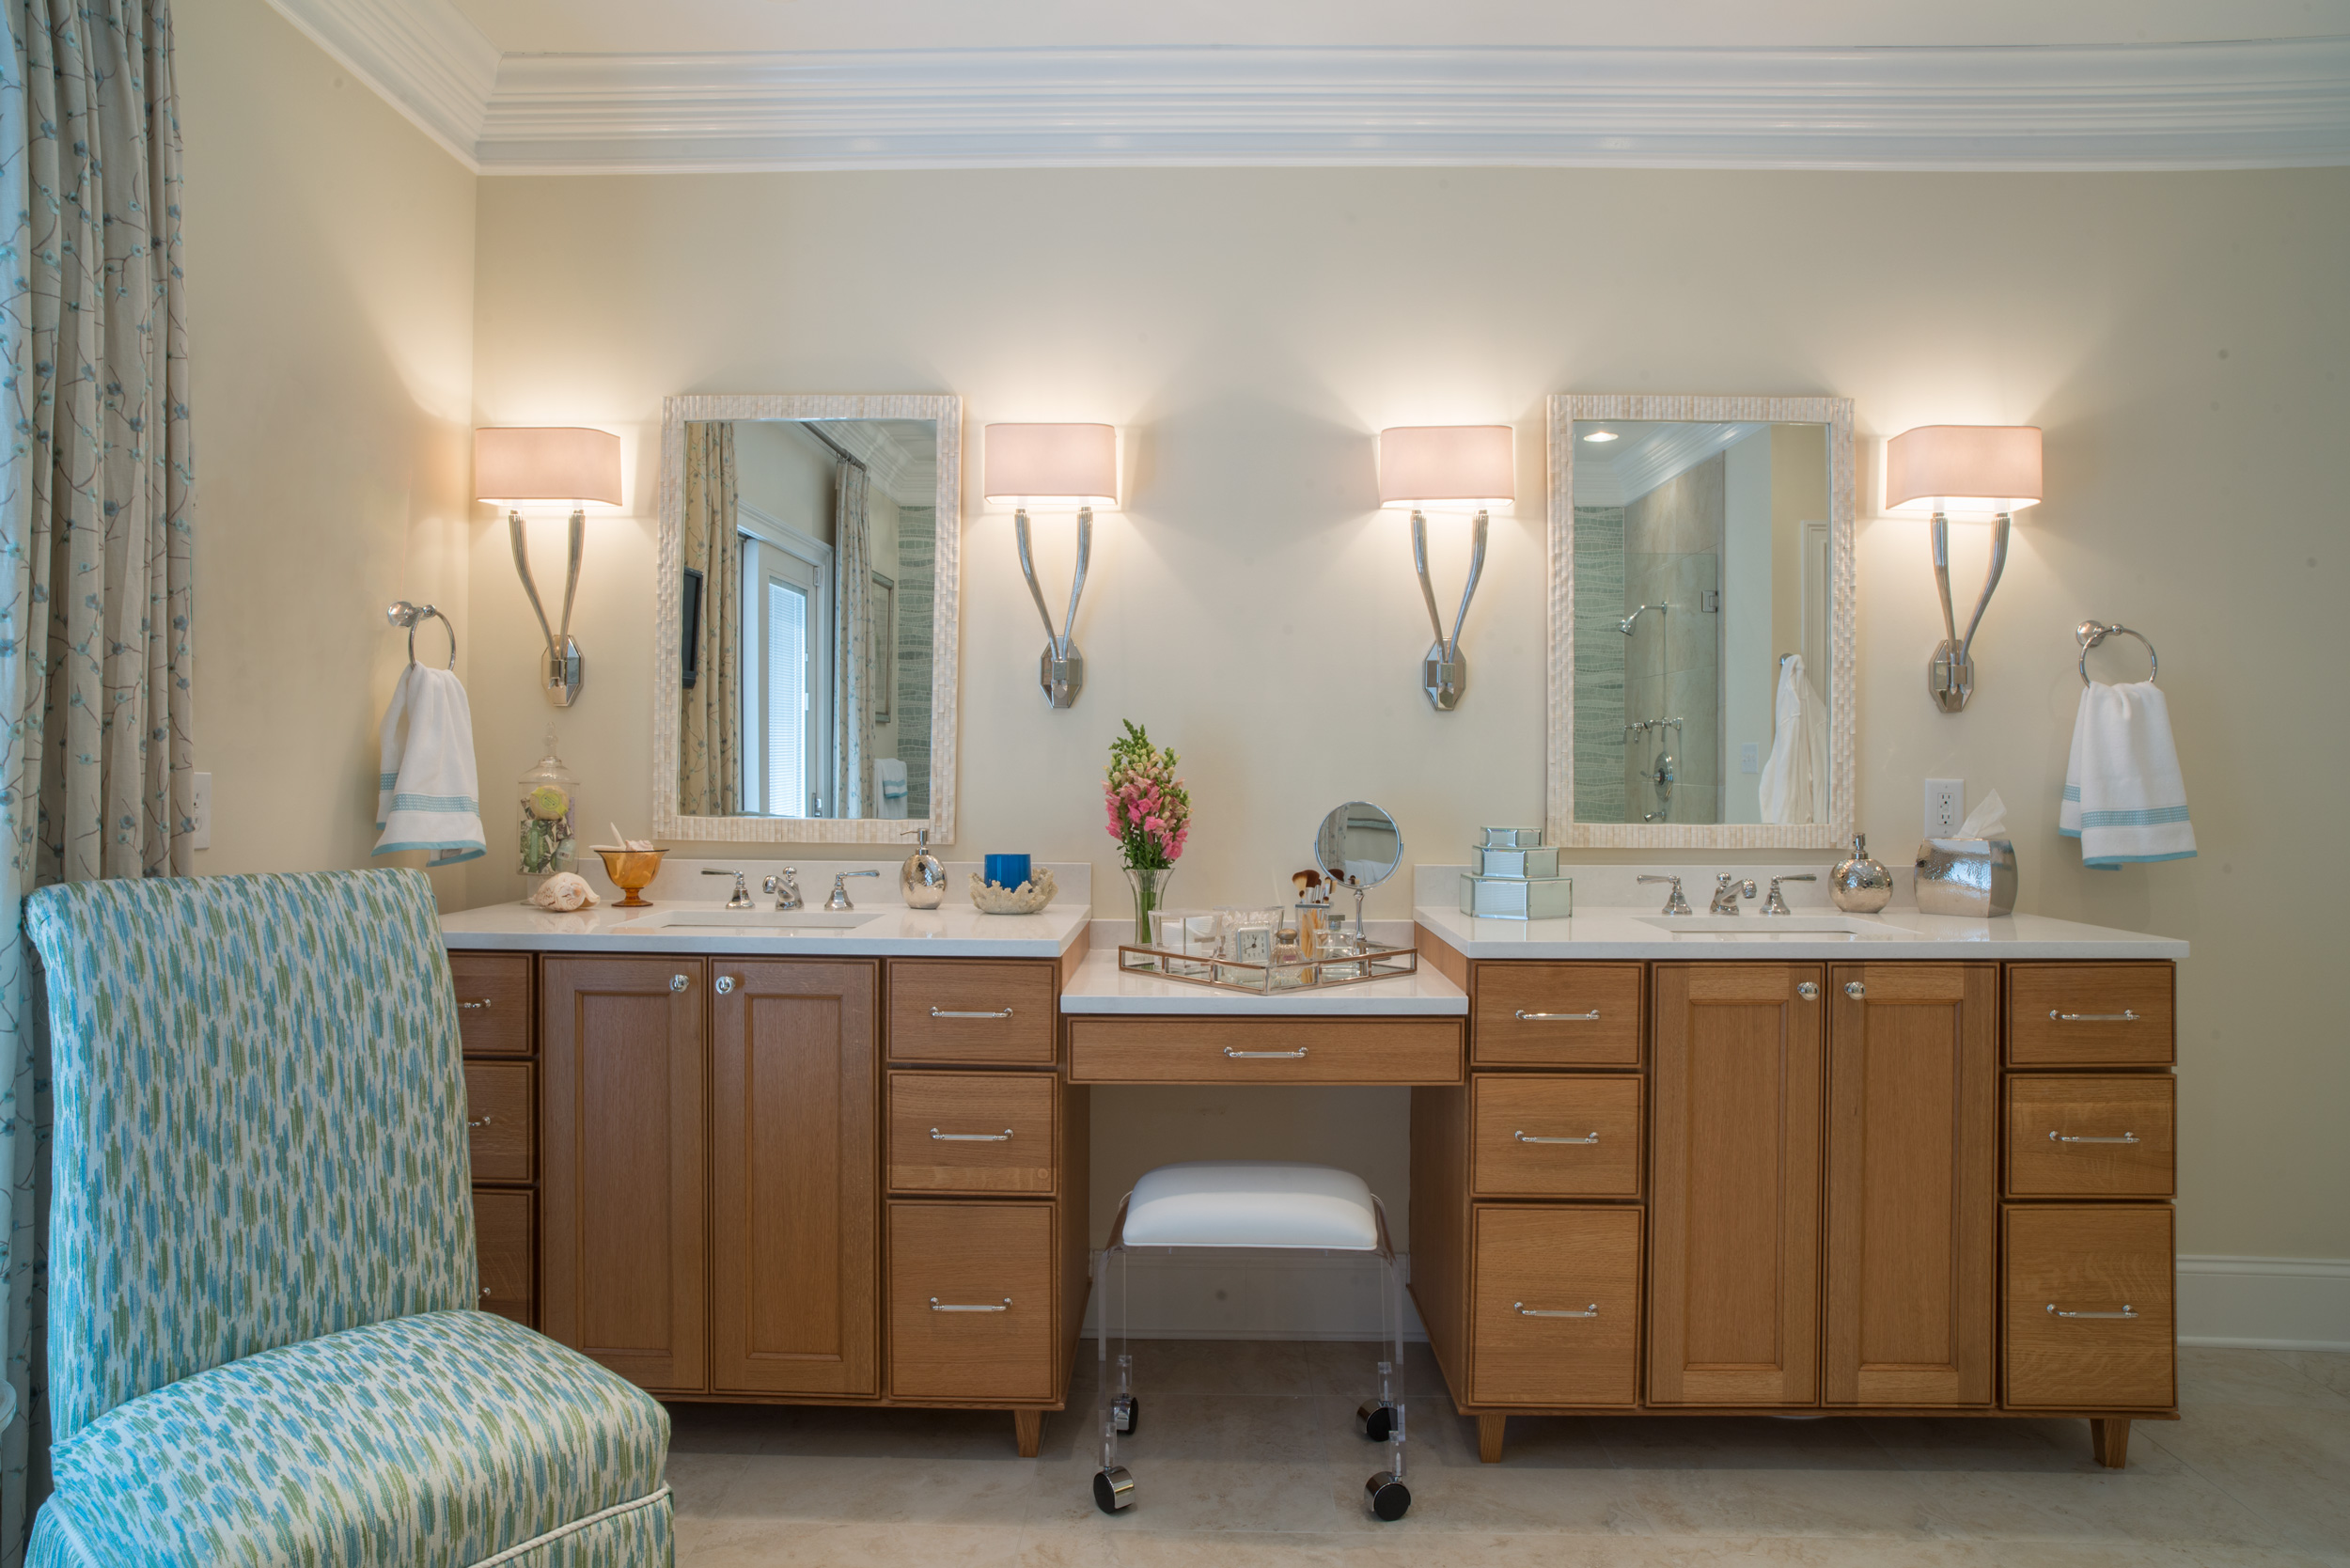 Bathroom Design Knoxille